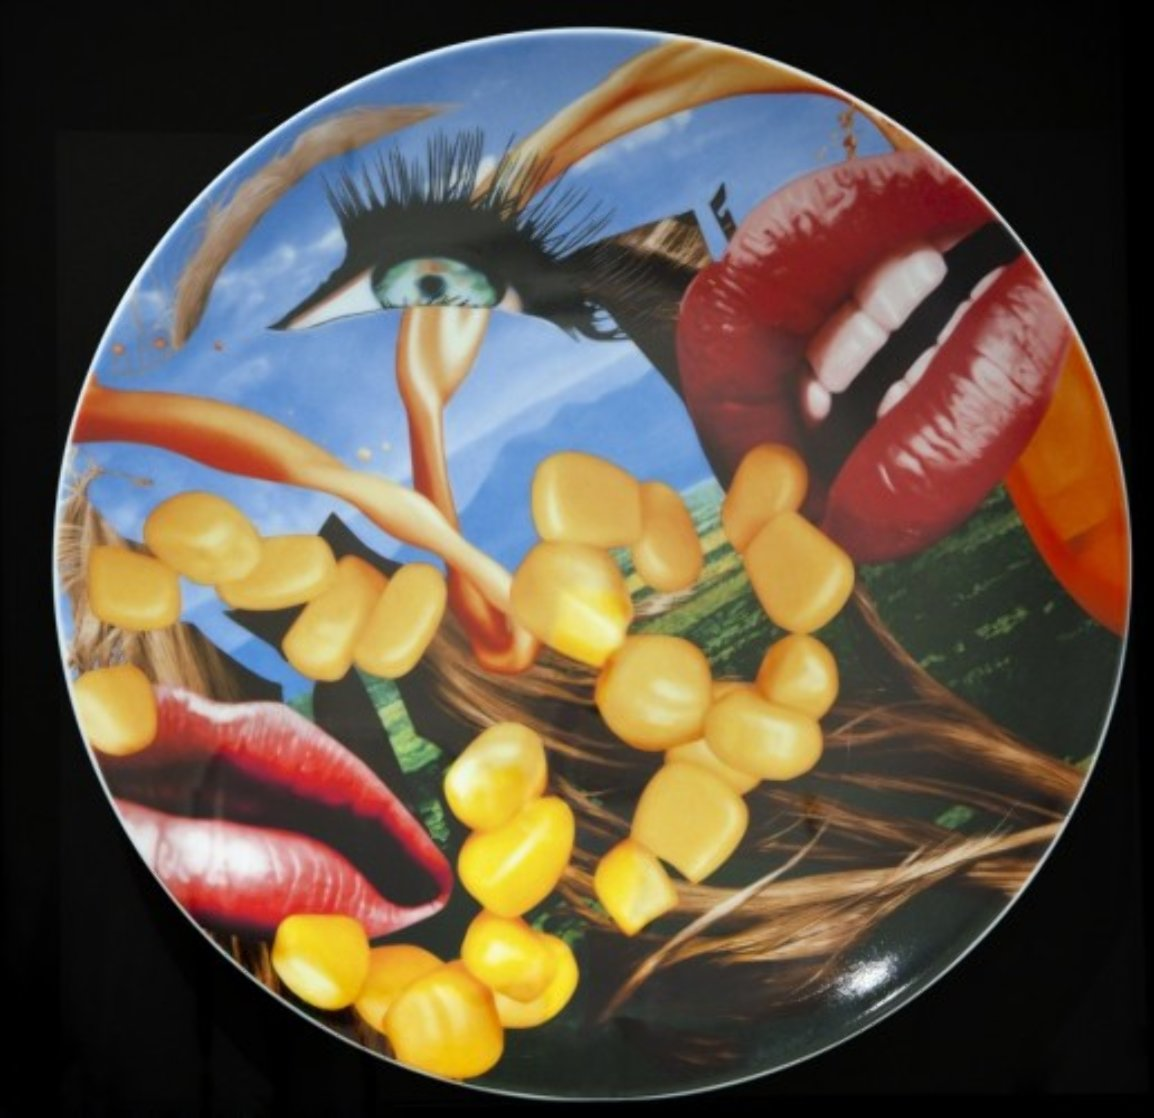 Lips Porcelain Plate 2012 Limited Edition Print by Jeff Koons